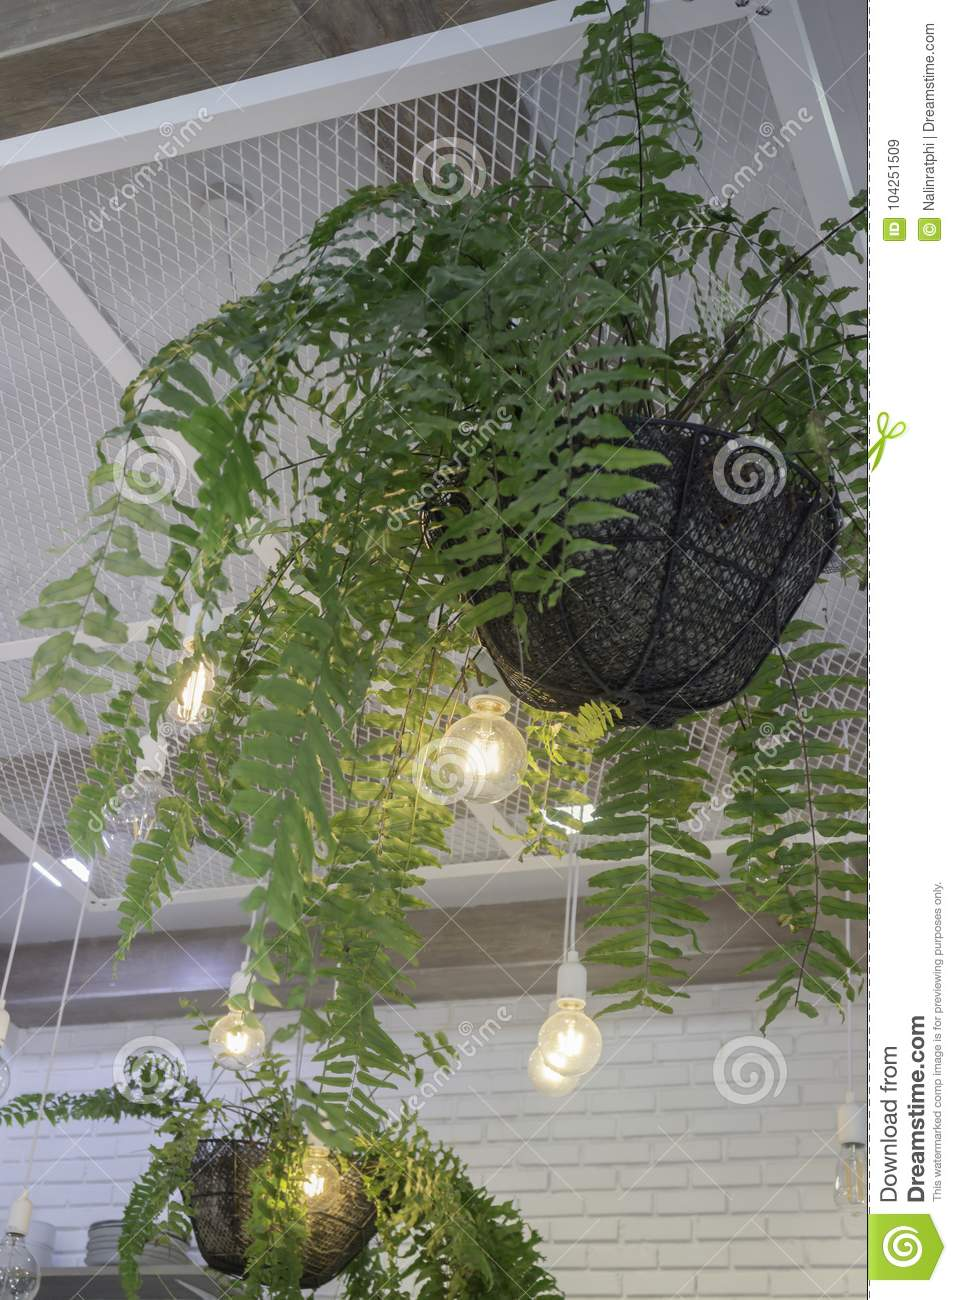 Fern In Plant Pot Hanging On Ceiling Stock Image Image Of Beauty